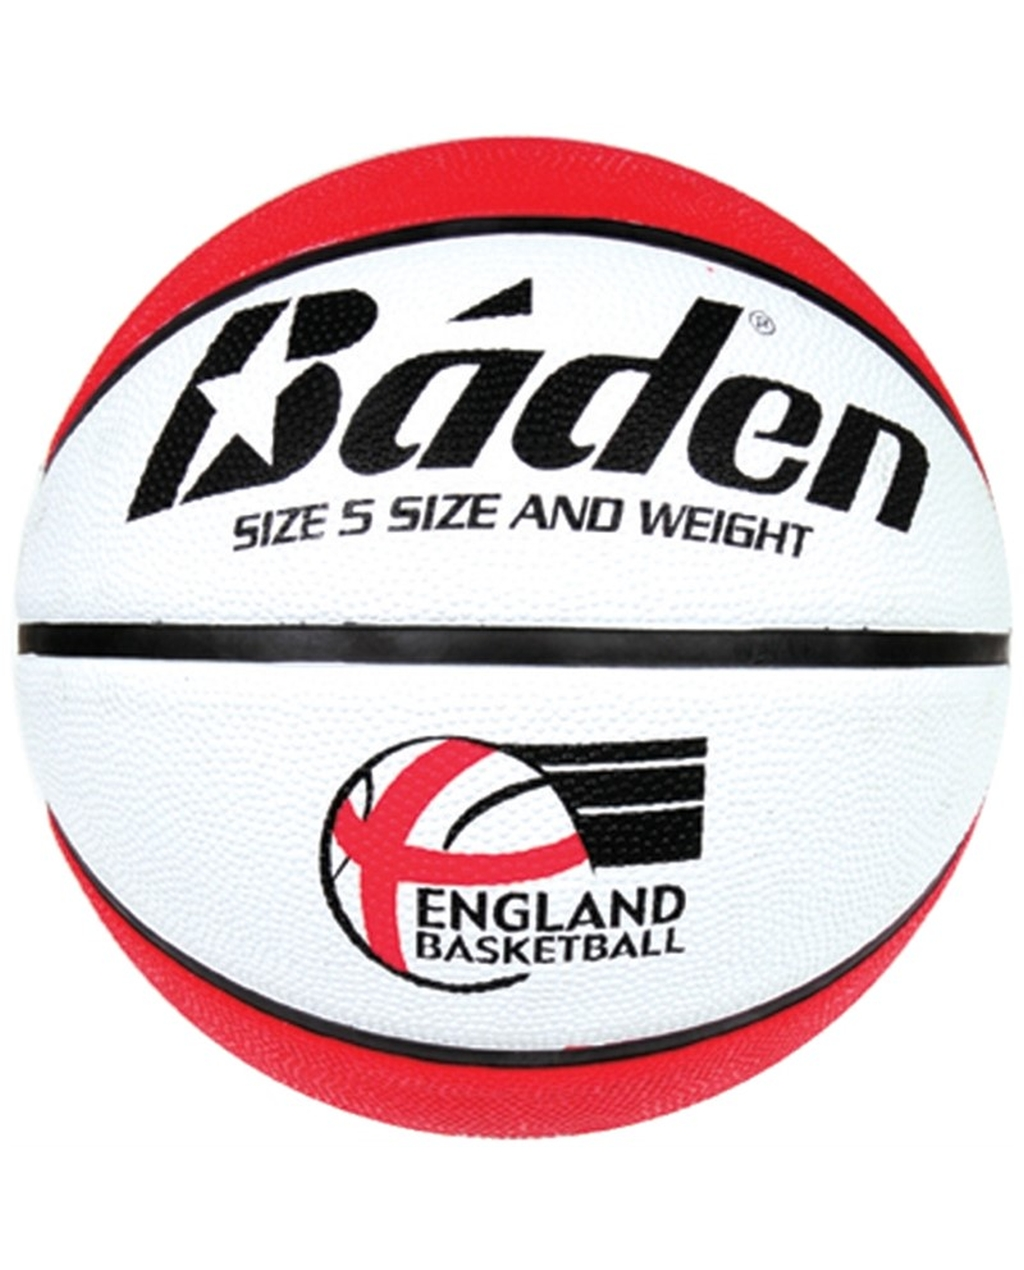 Baden England DX Basketball